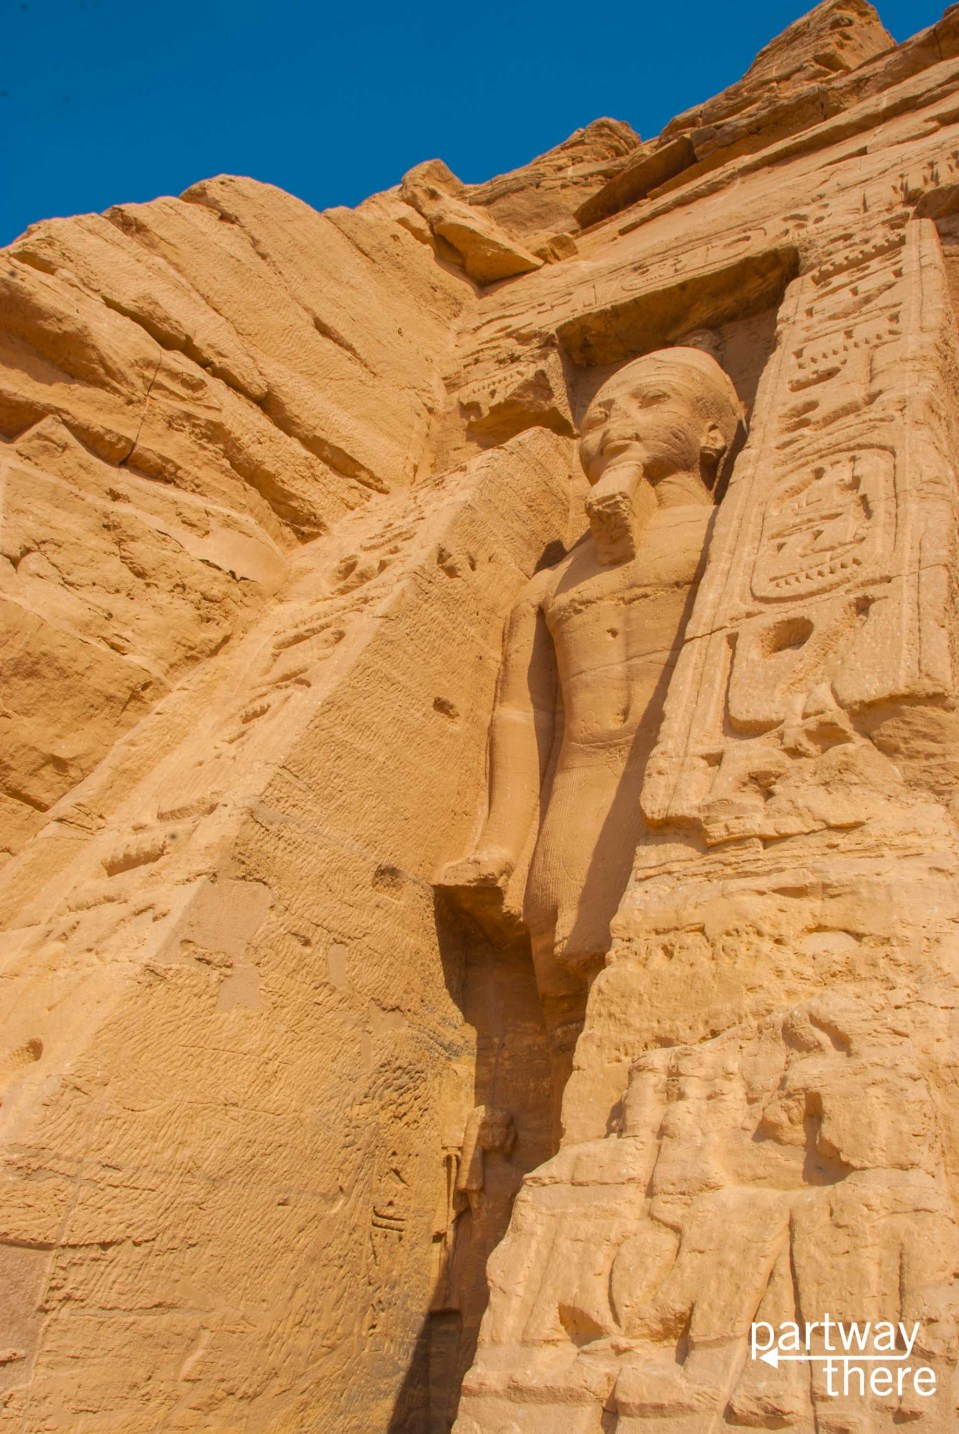 A statue outside the temple of Nefertari at the Abu Simbel temple complex in Egypt